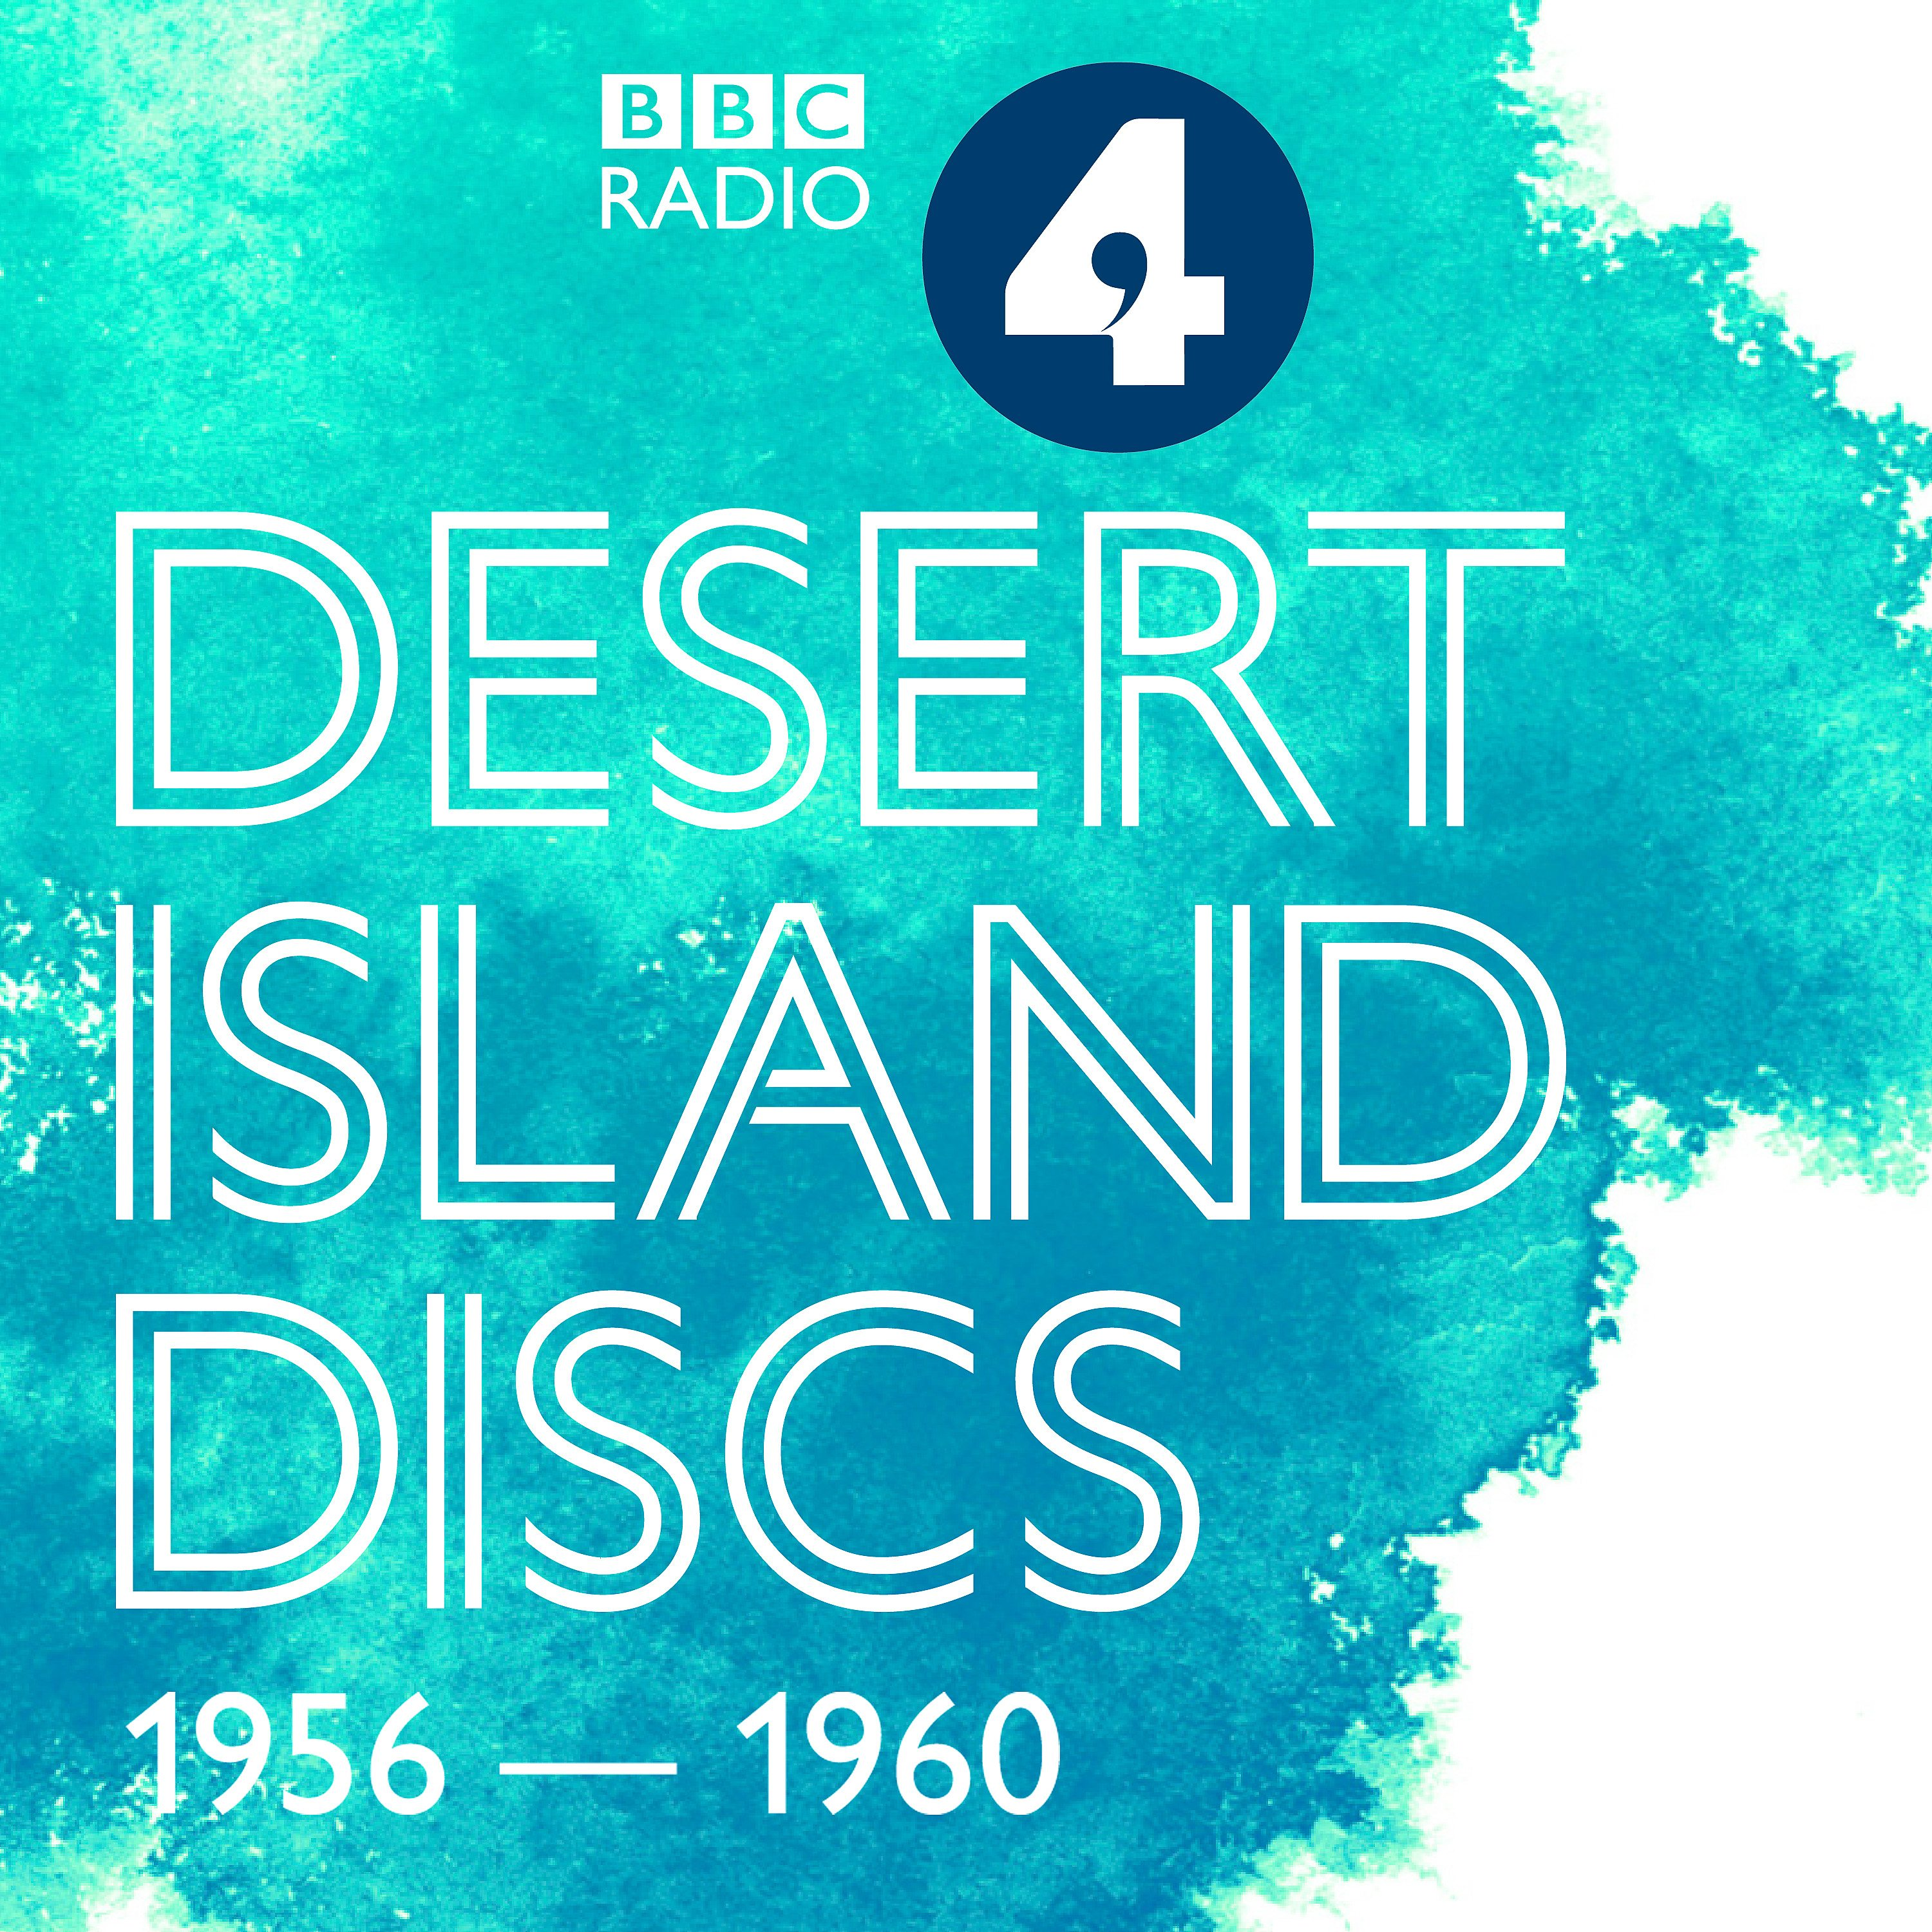 Roy Plomley Choose On Desert Island Discs